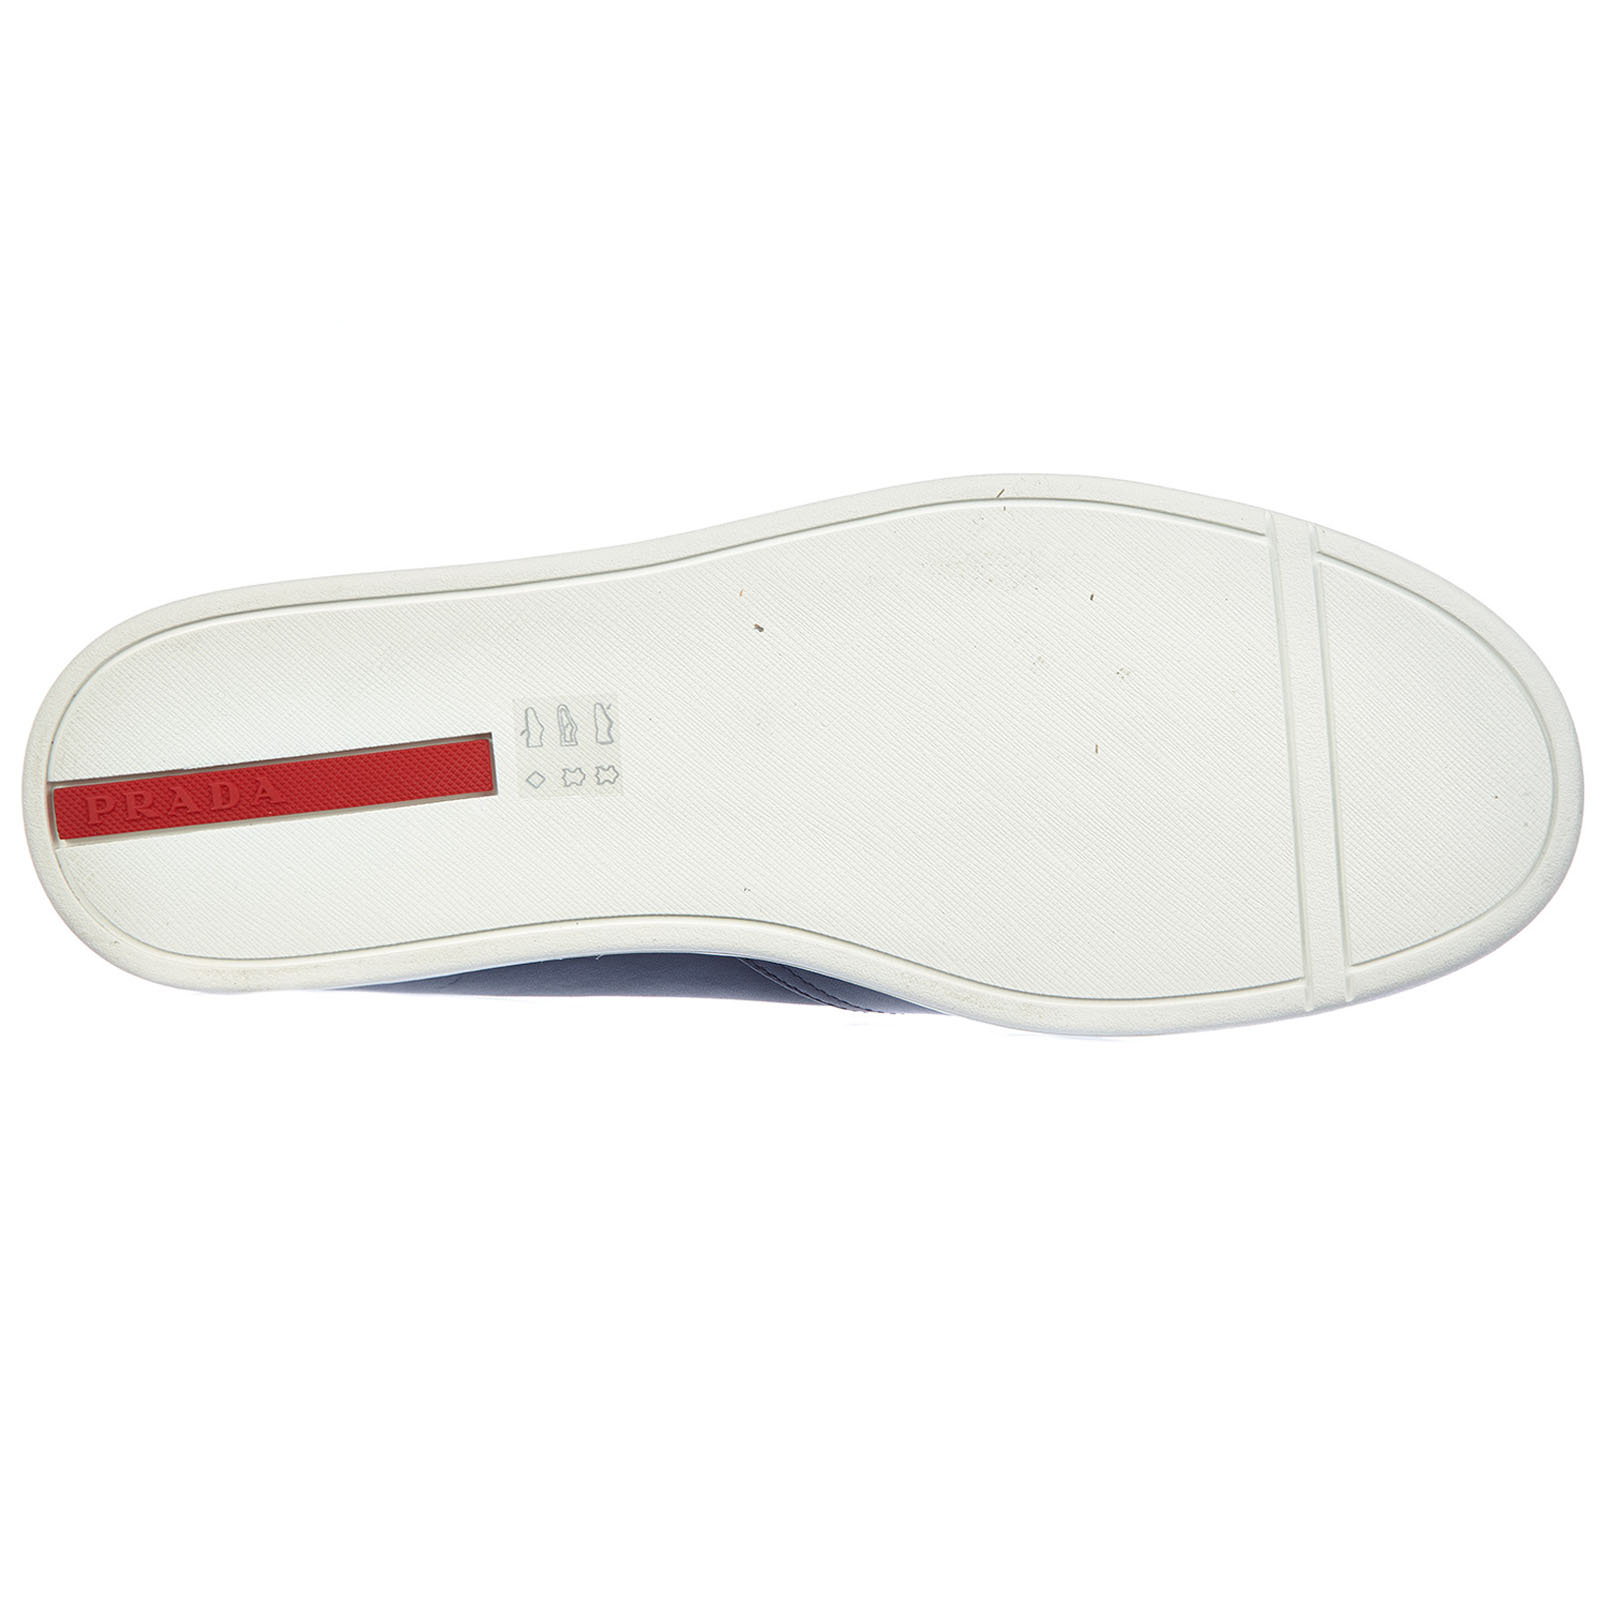 Herren leder slip on slipper sneakers  vitello plume